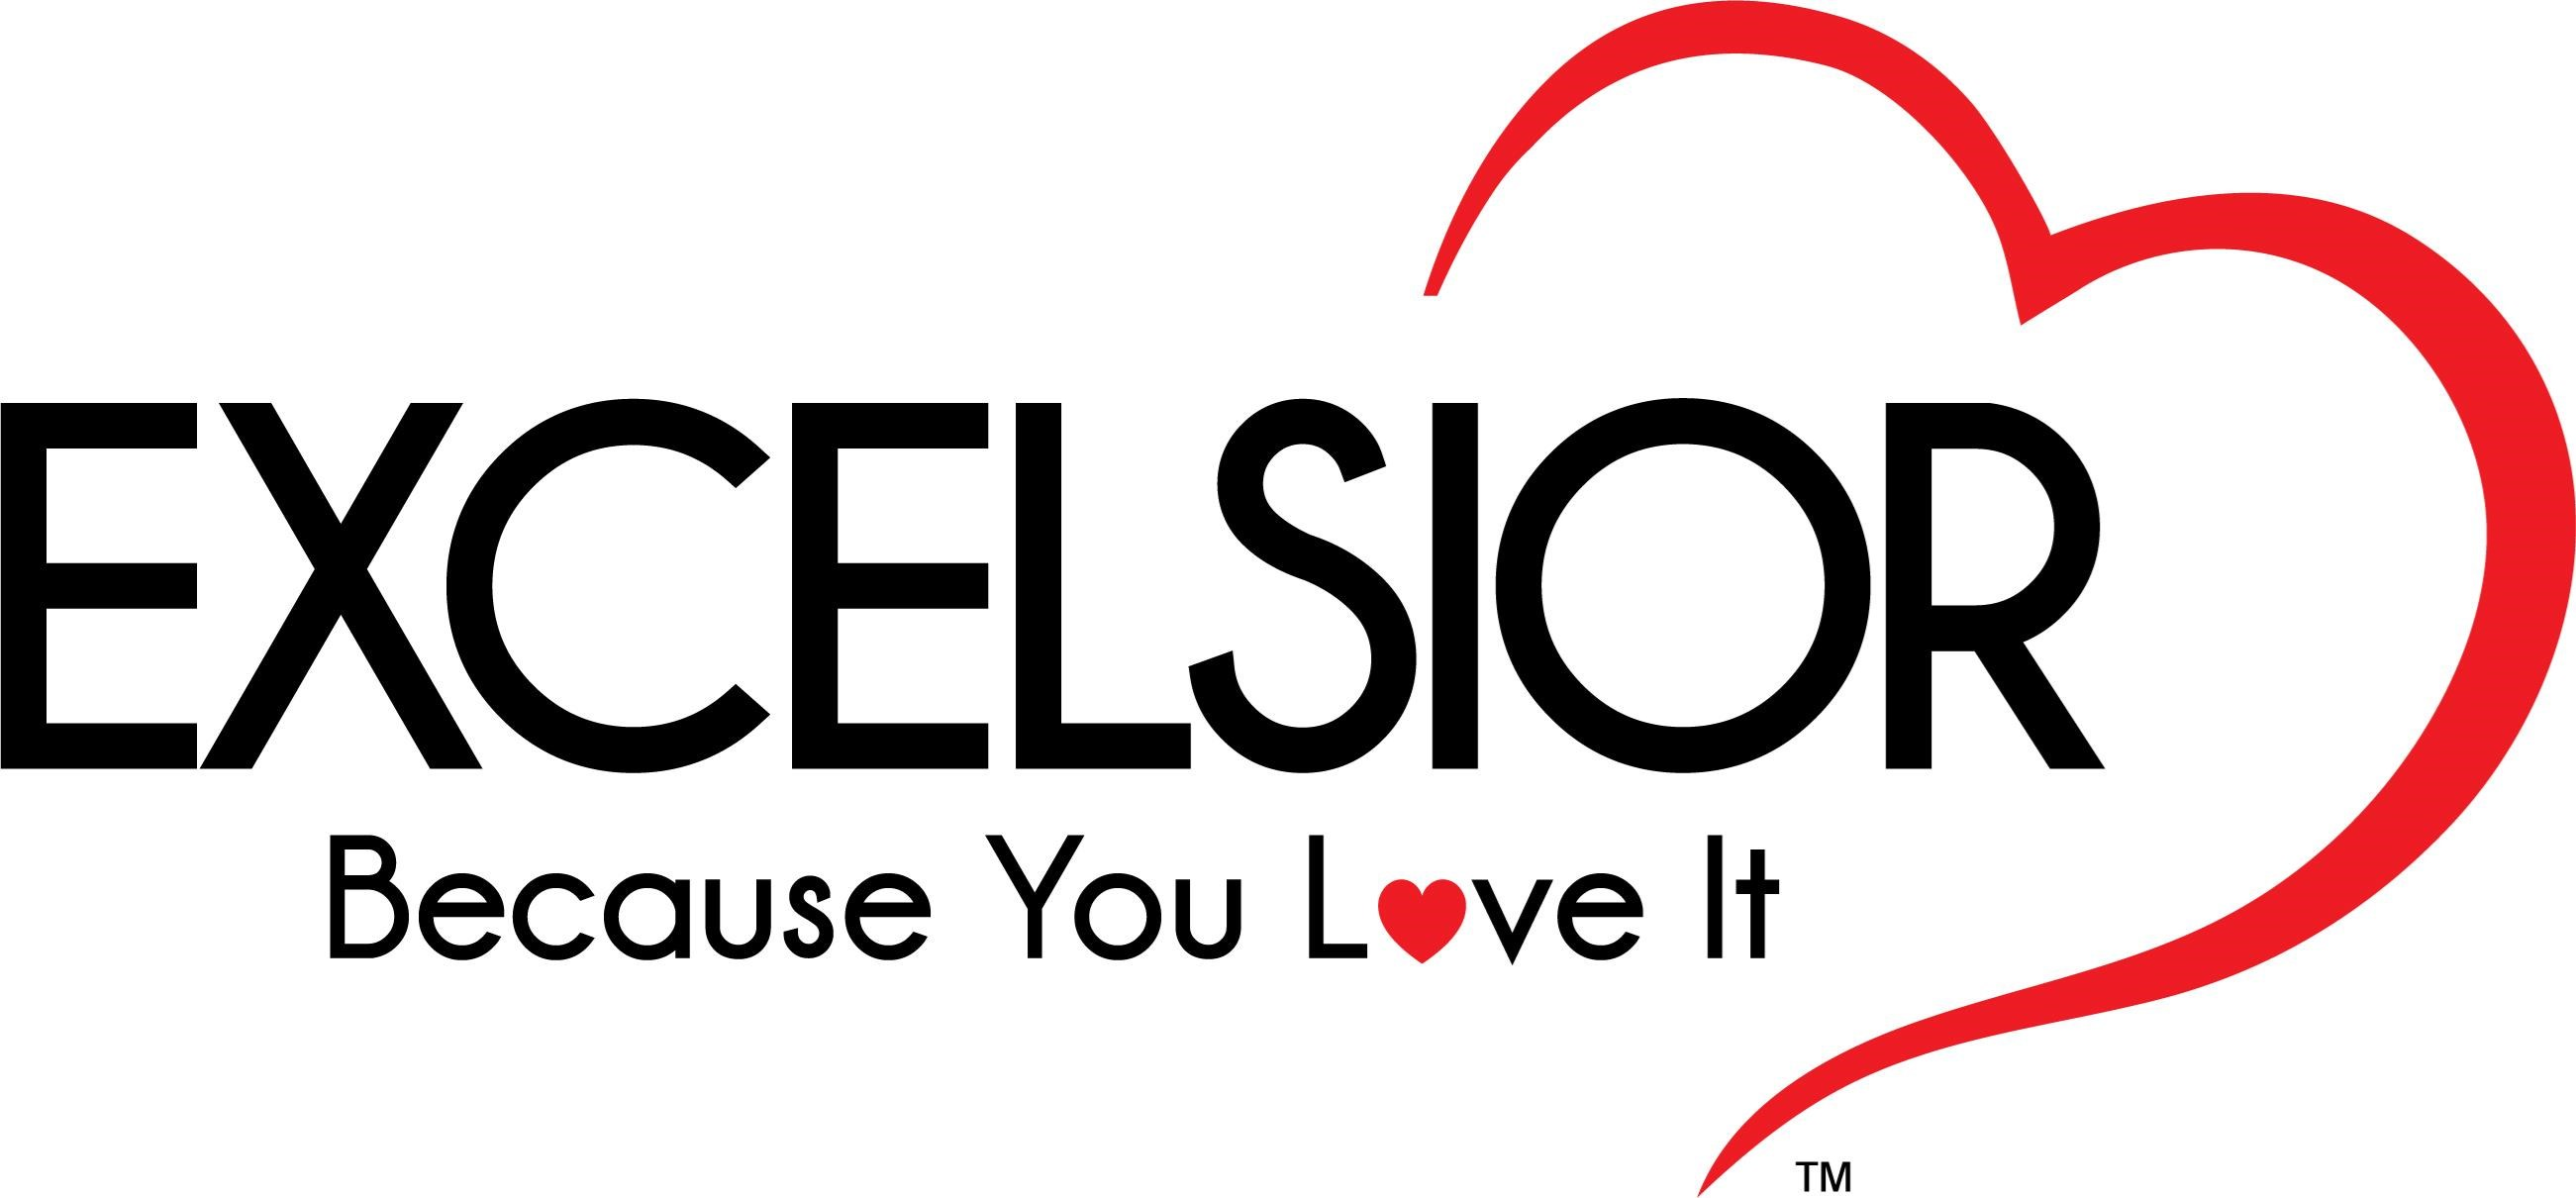 Stationary Furniture Stationary Furniture Protection $10001-$1250 by Excelsior at C. S. Wo & Sons Hawaii